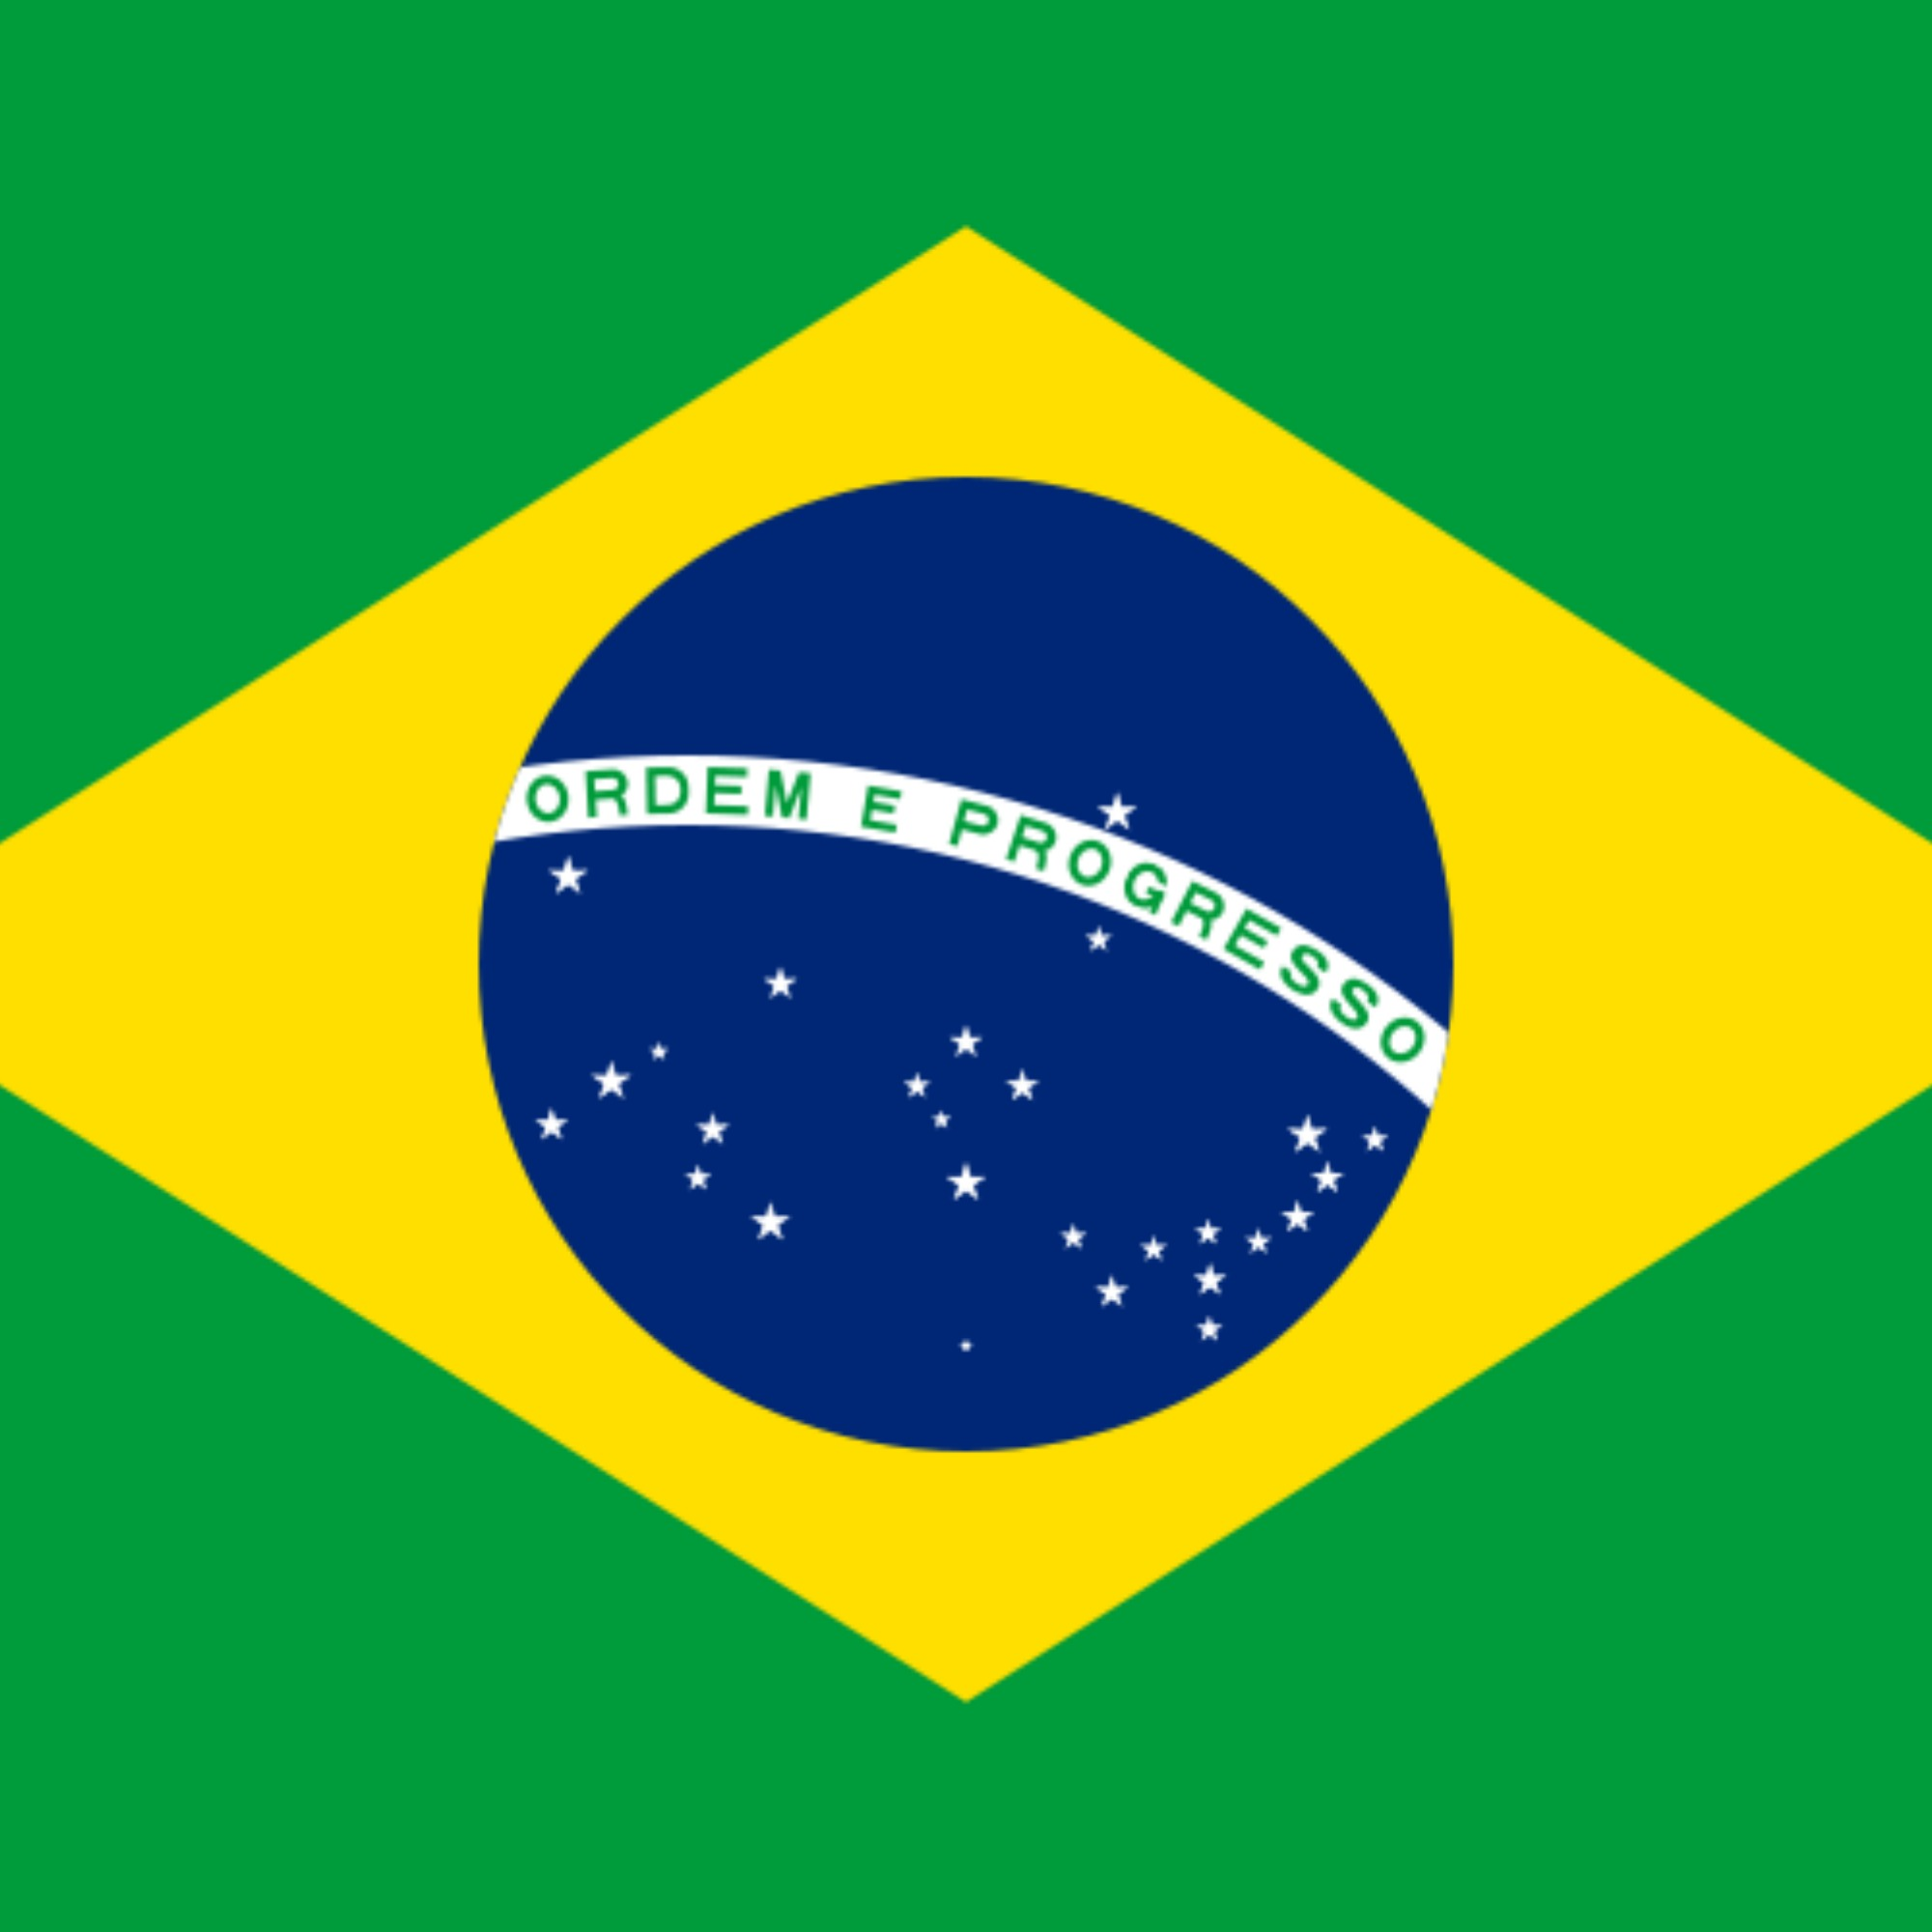 Honorary Consulate of Brazil (Alicante)